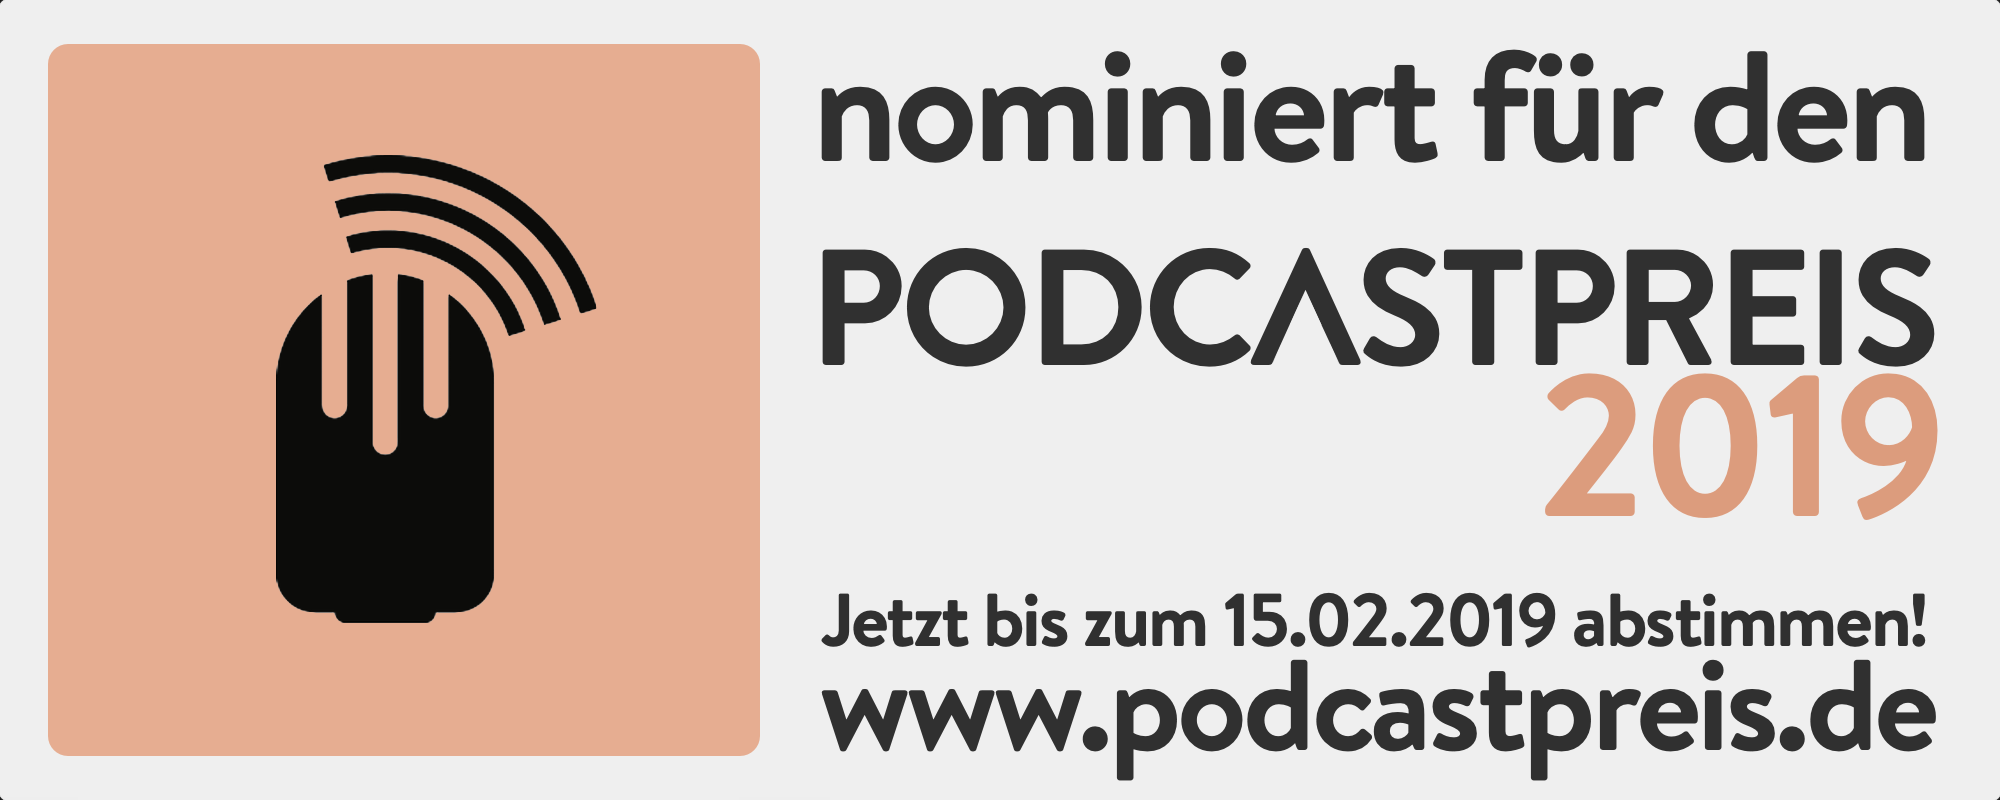 Podcastpreis_2019_nominiert_hell